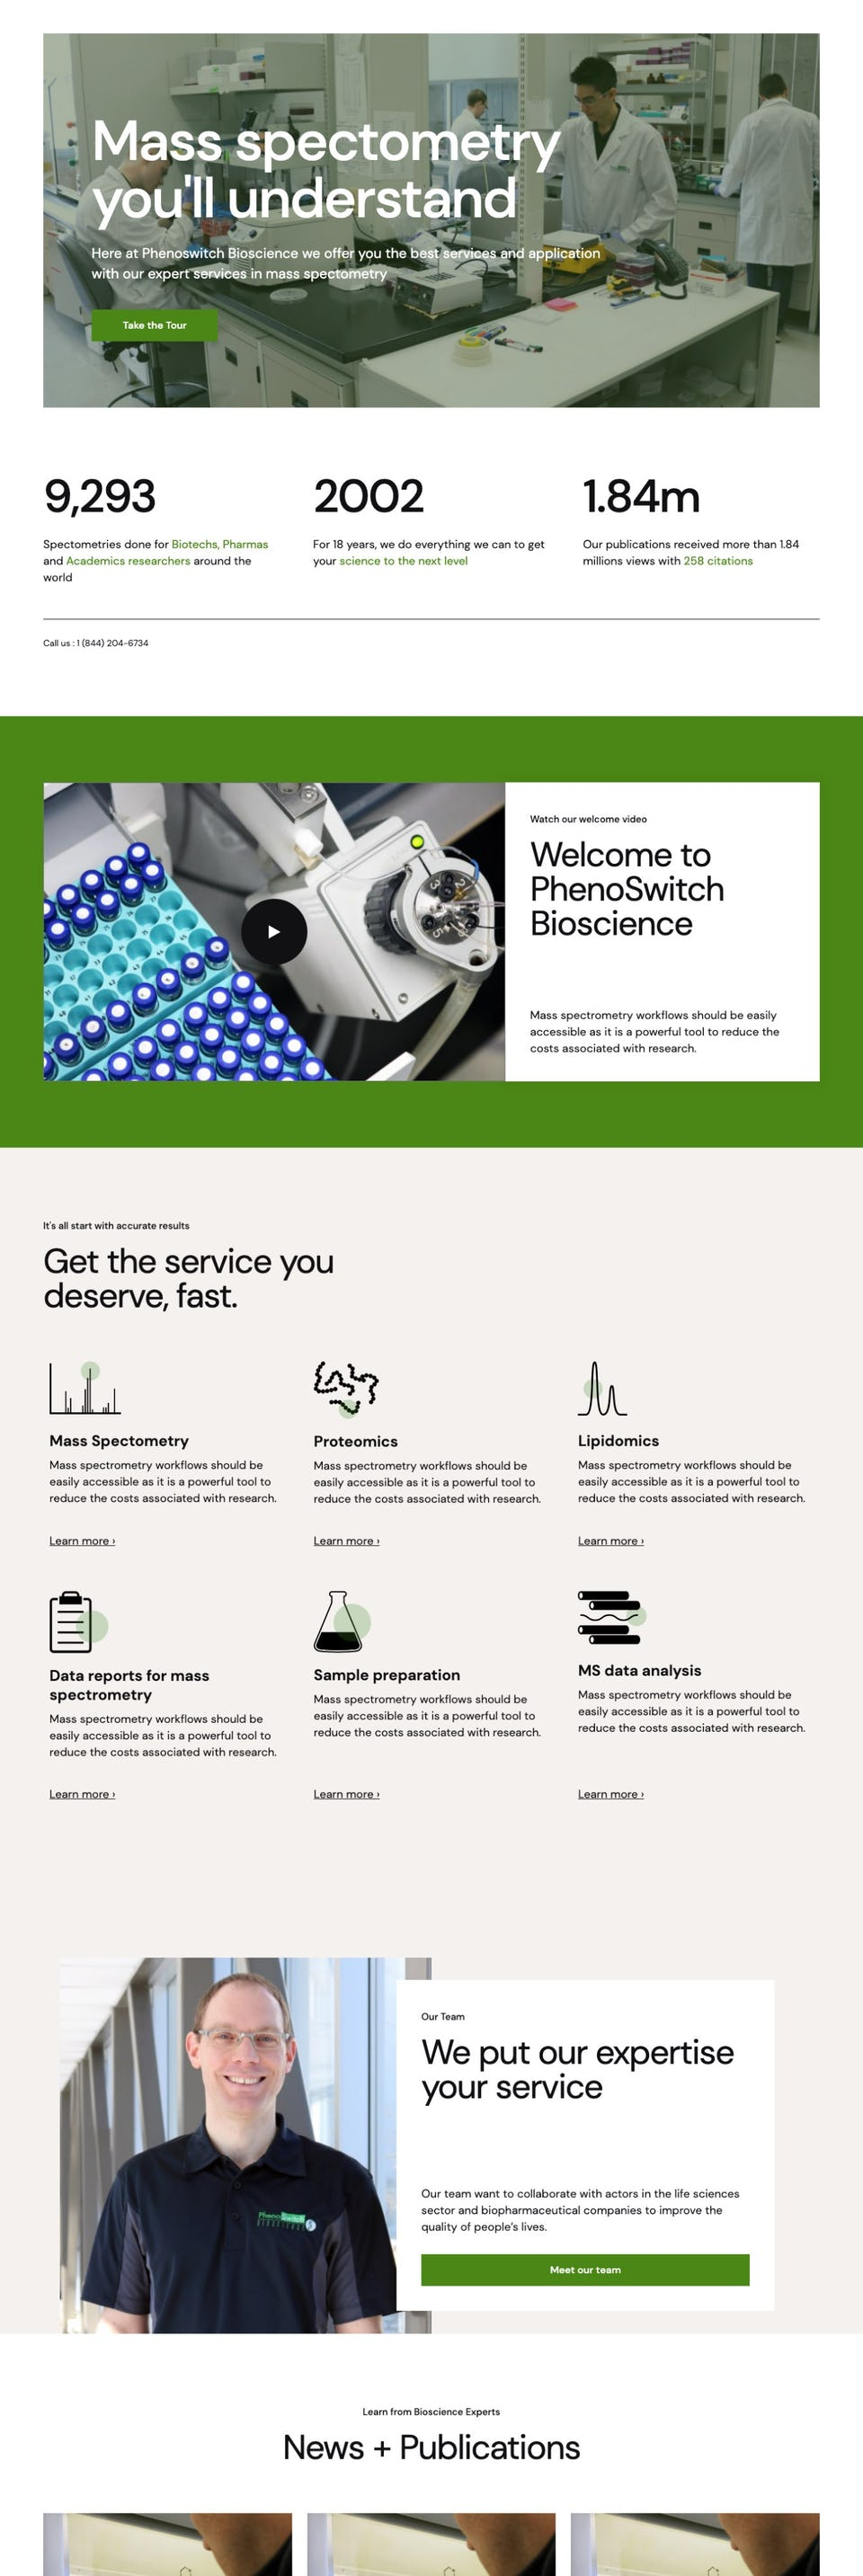 webflow project 1 - PhenoSwitch Bioscience